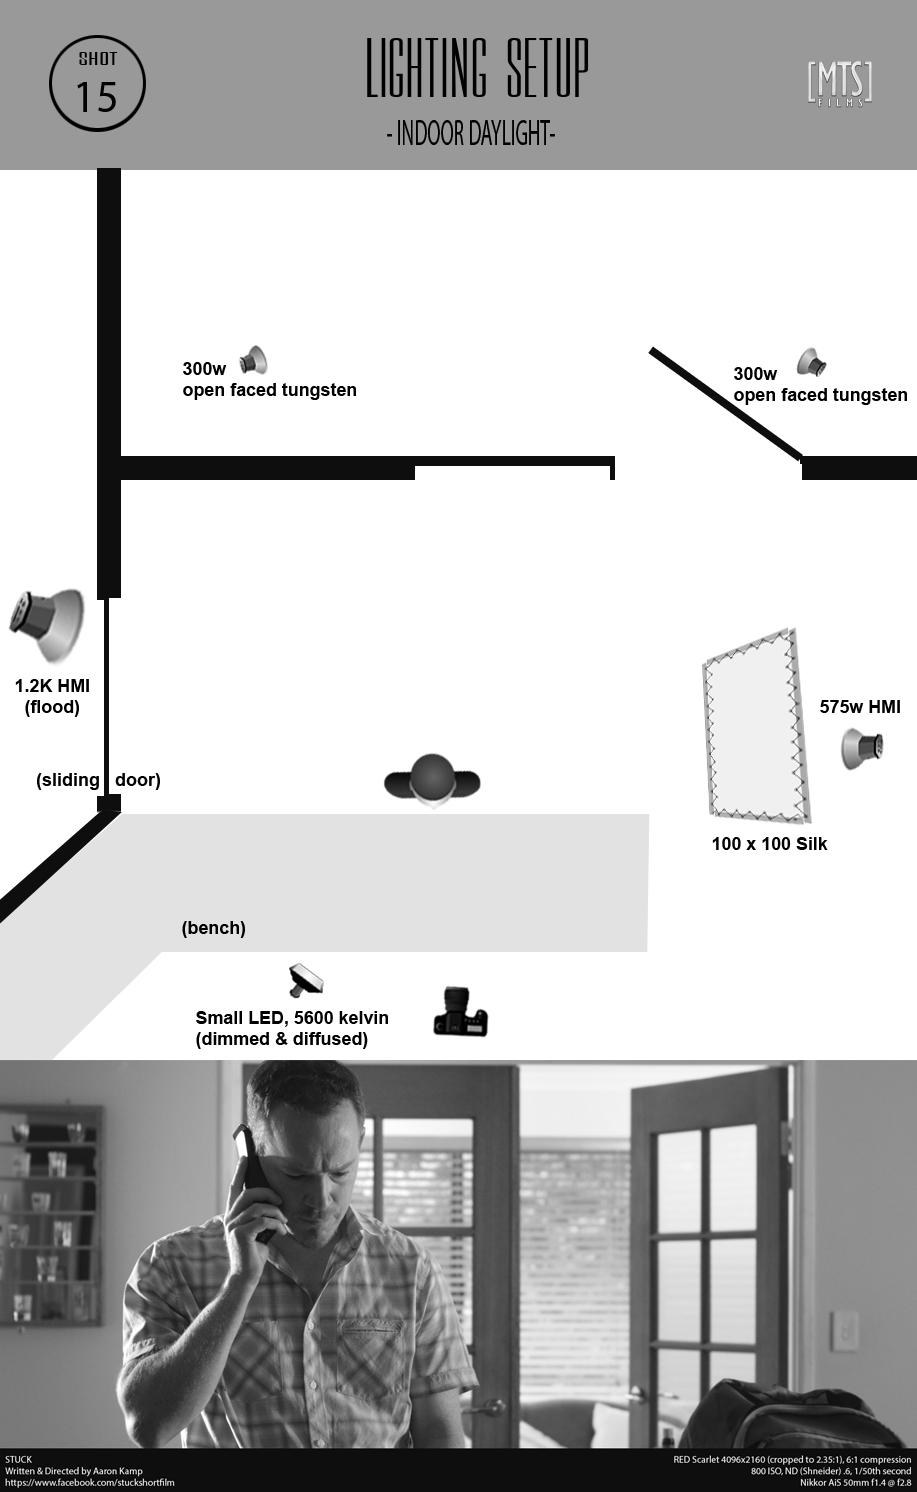 medium resolution of for more lighting diagrams be sure to visit the lighting section at the top of this page thanks for visiting